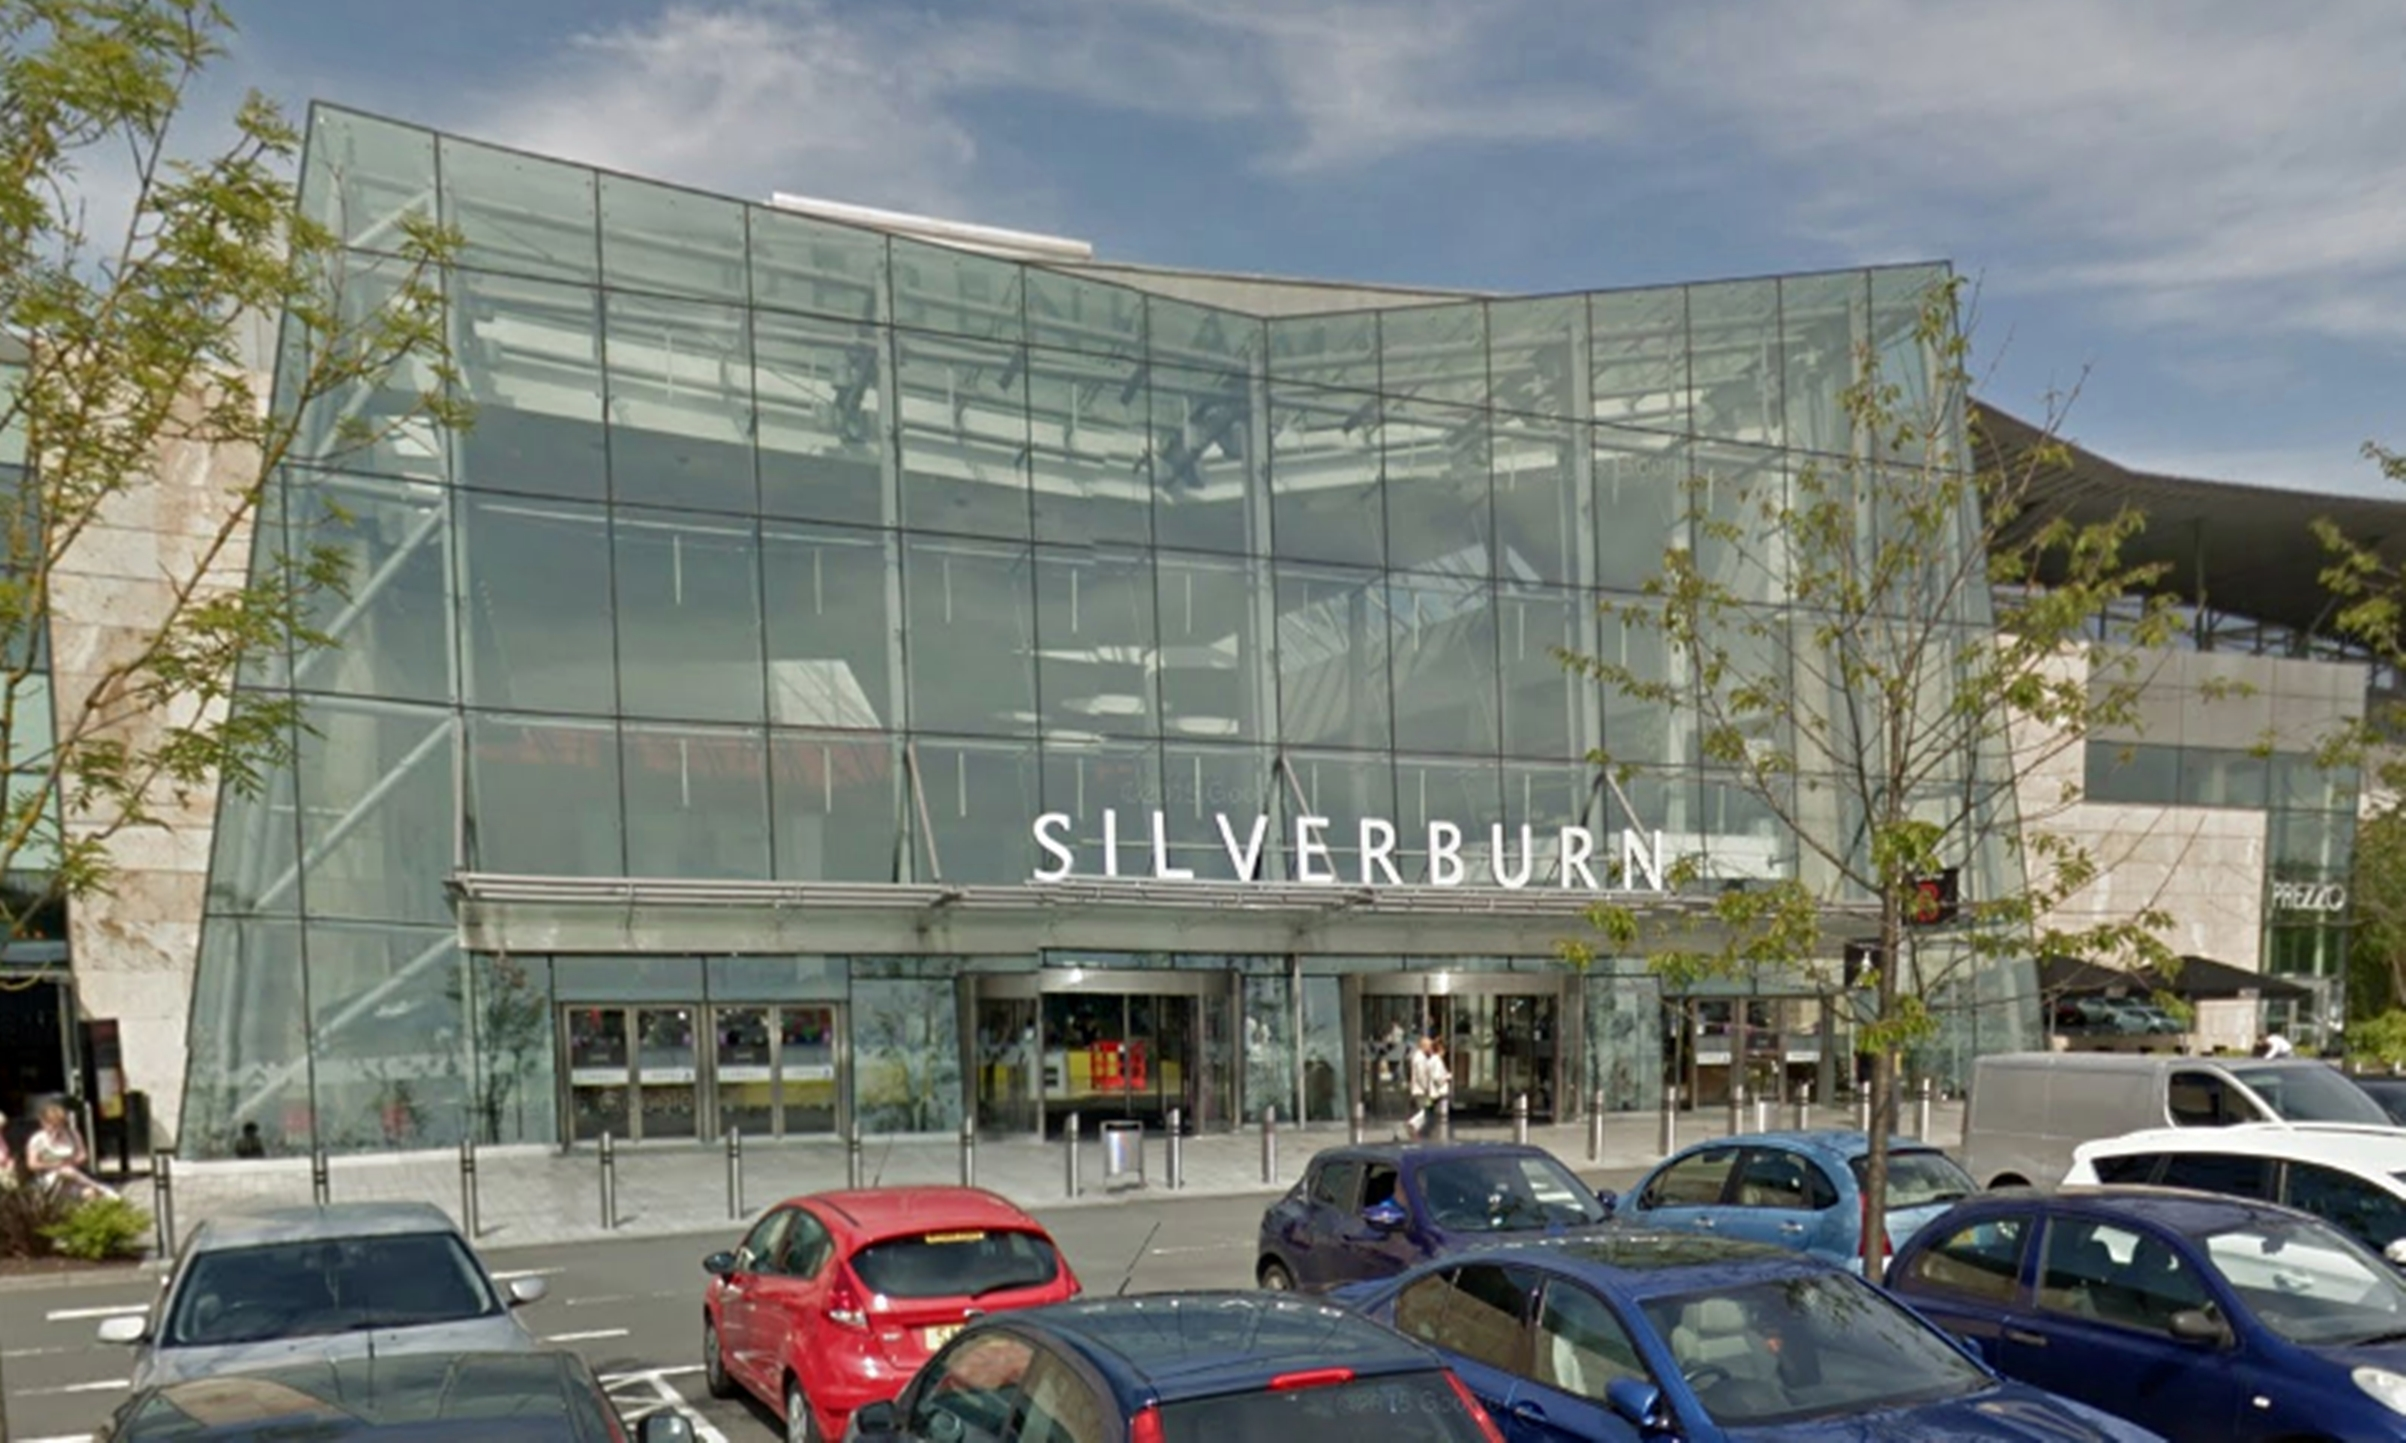 Shoppers have reported seeing a shadowy figure lurking at the Silverburn centre .